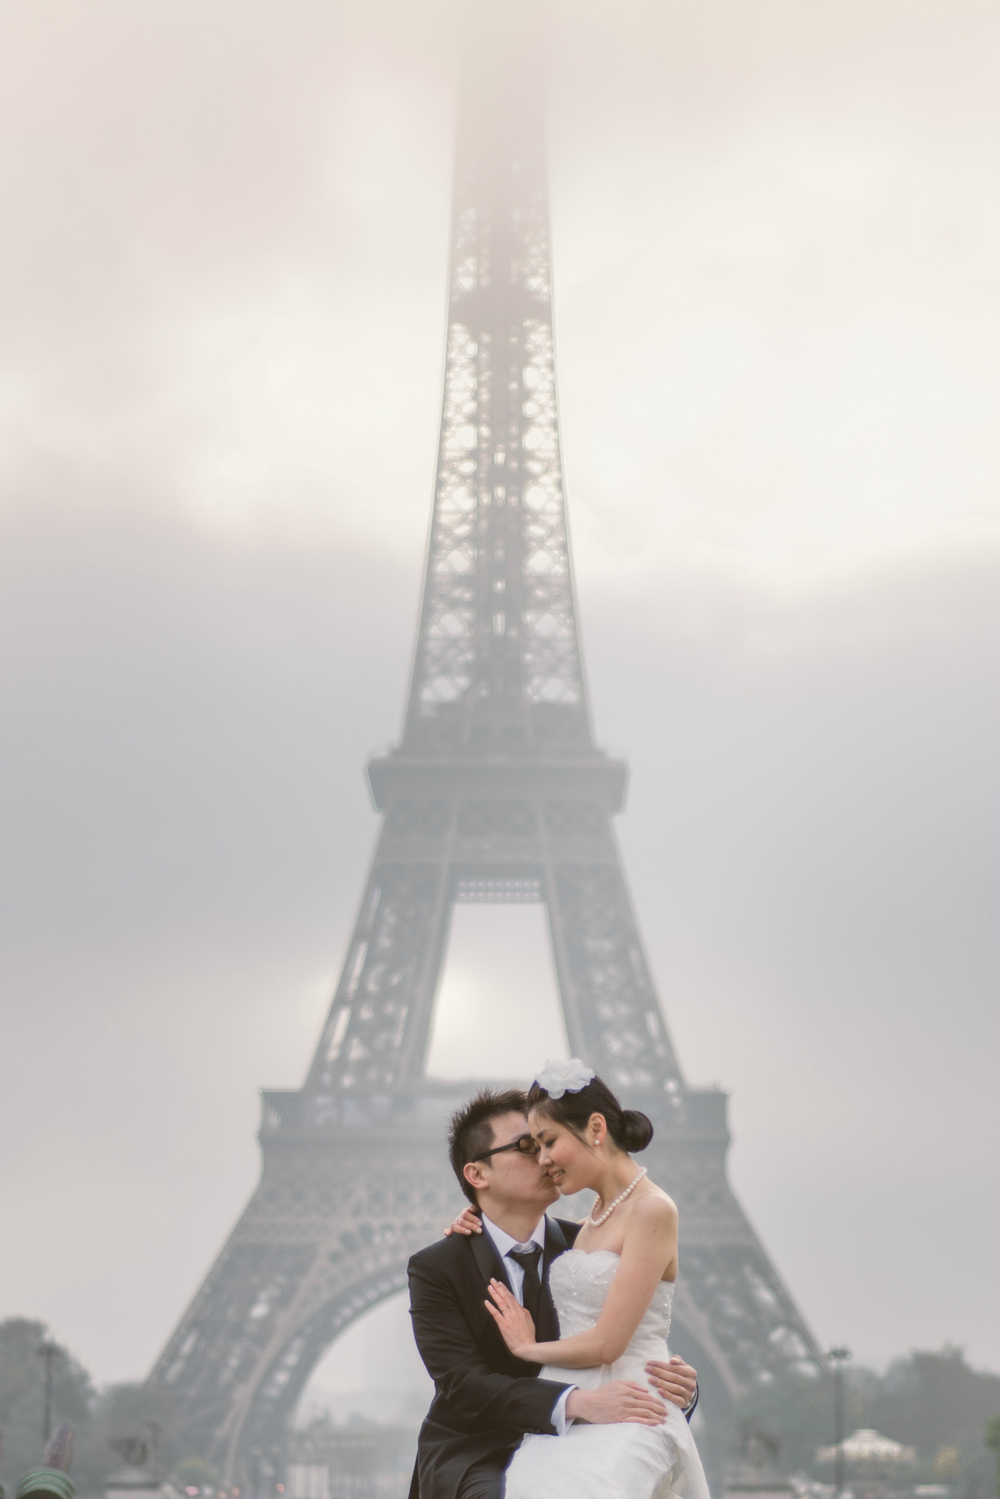 Prewedding session in Paris couple kissing in front of the foggy Eiffel Tower